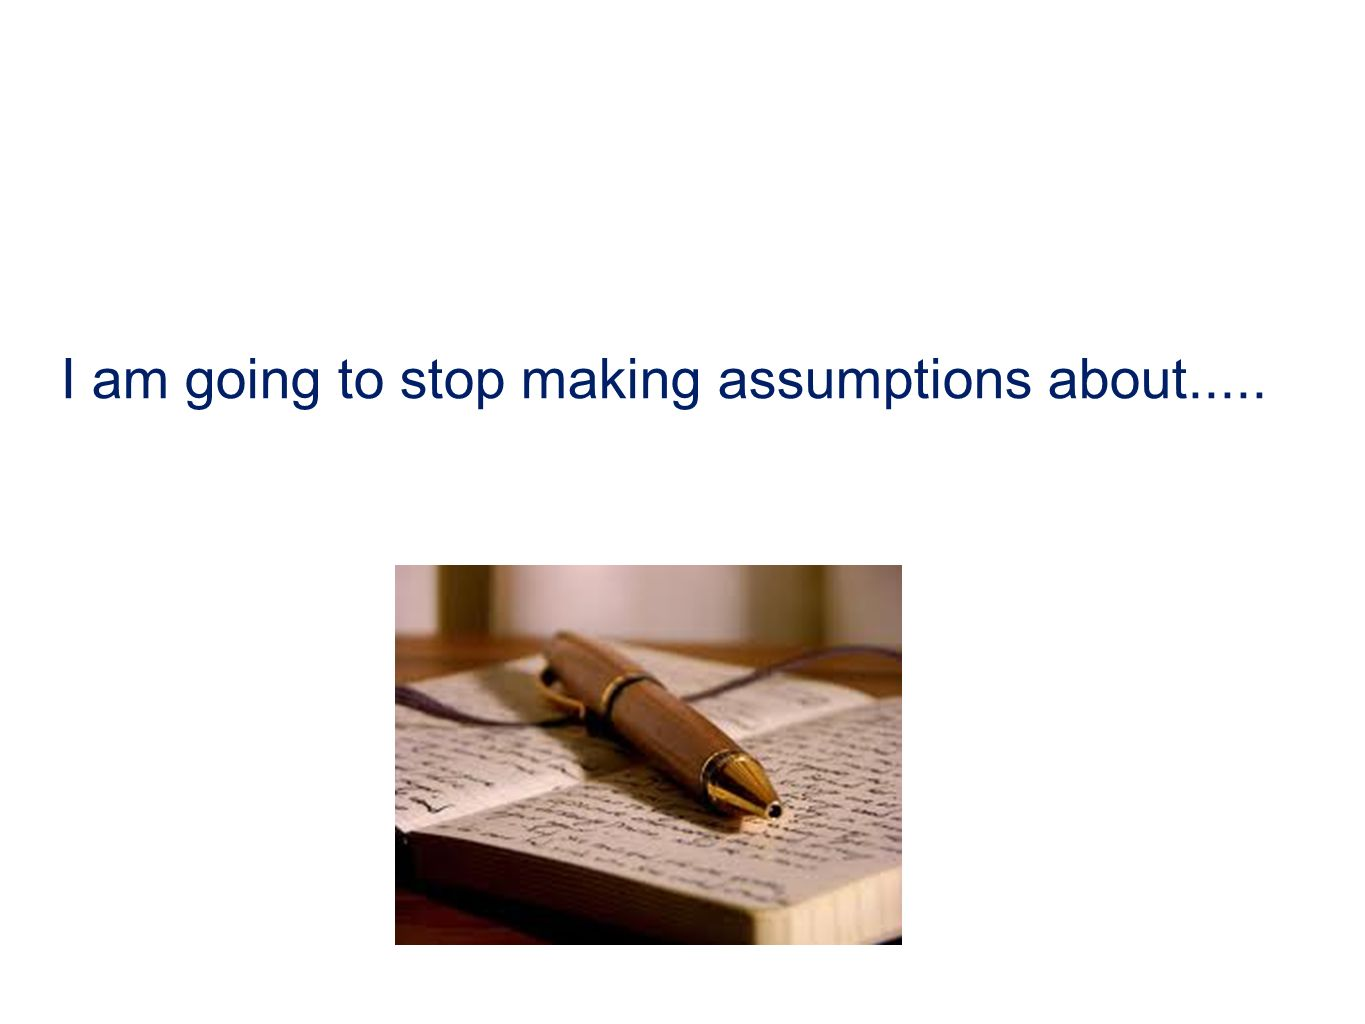 I am going to stop making assumptions about.....